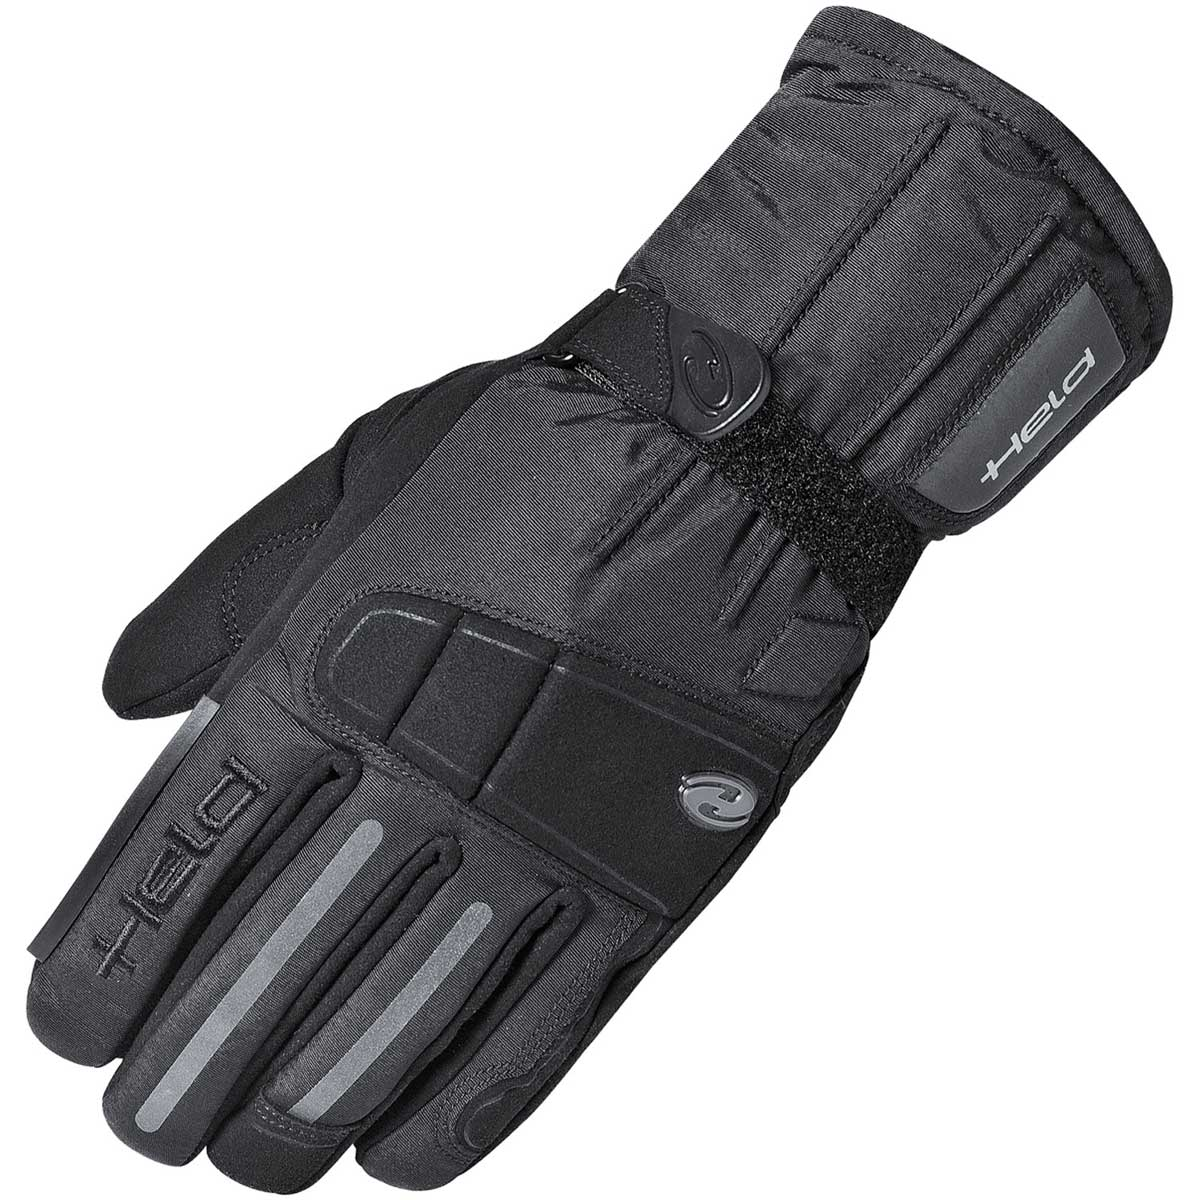 The Held 2248 Faxon Gloves